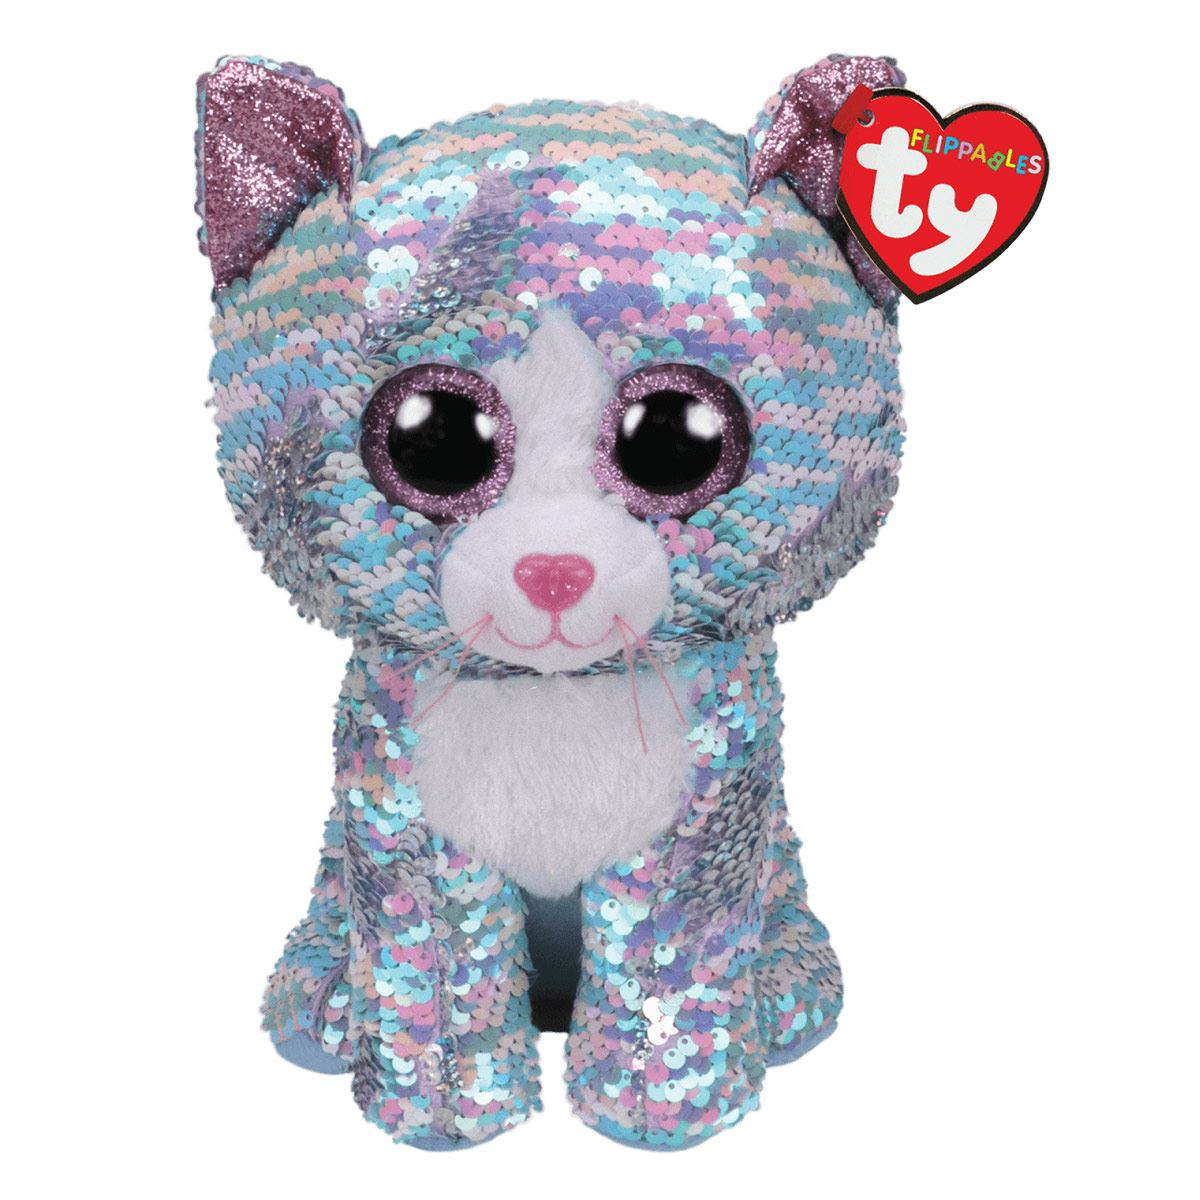 Peluche Whinsy - Sequin Blue Iridescent Cat TY